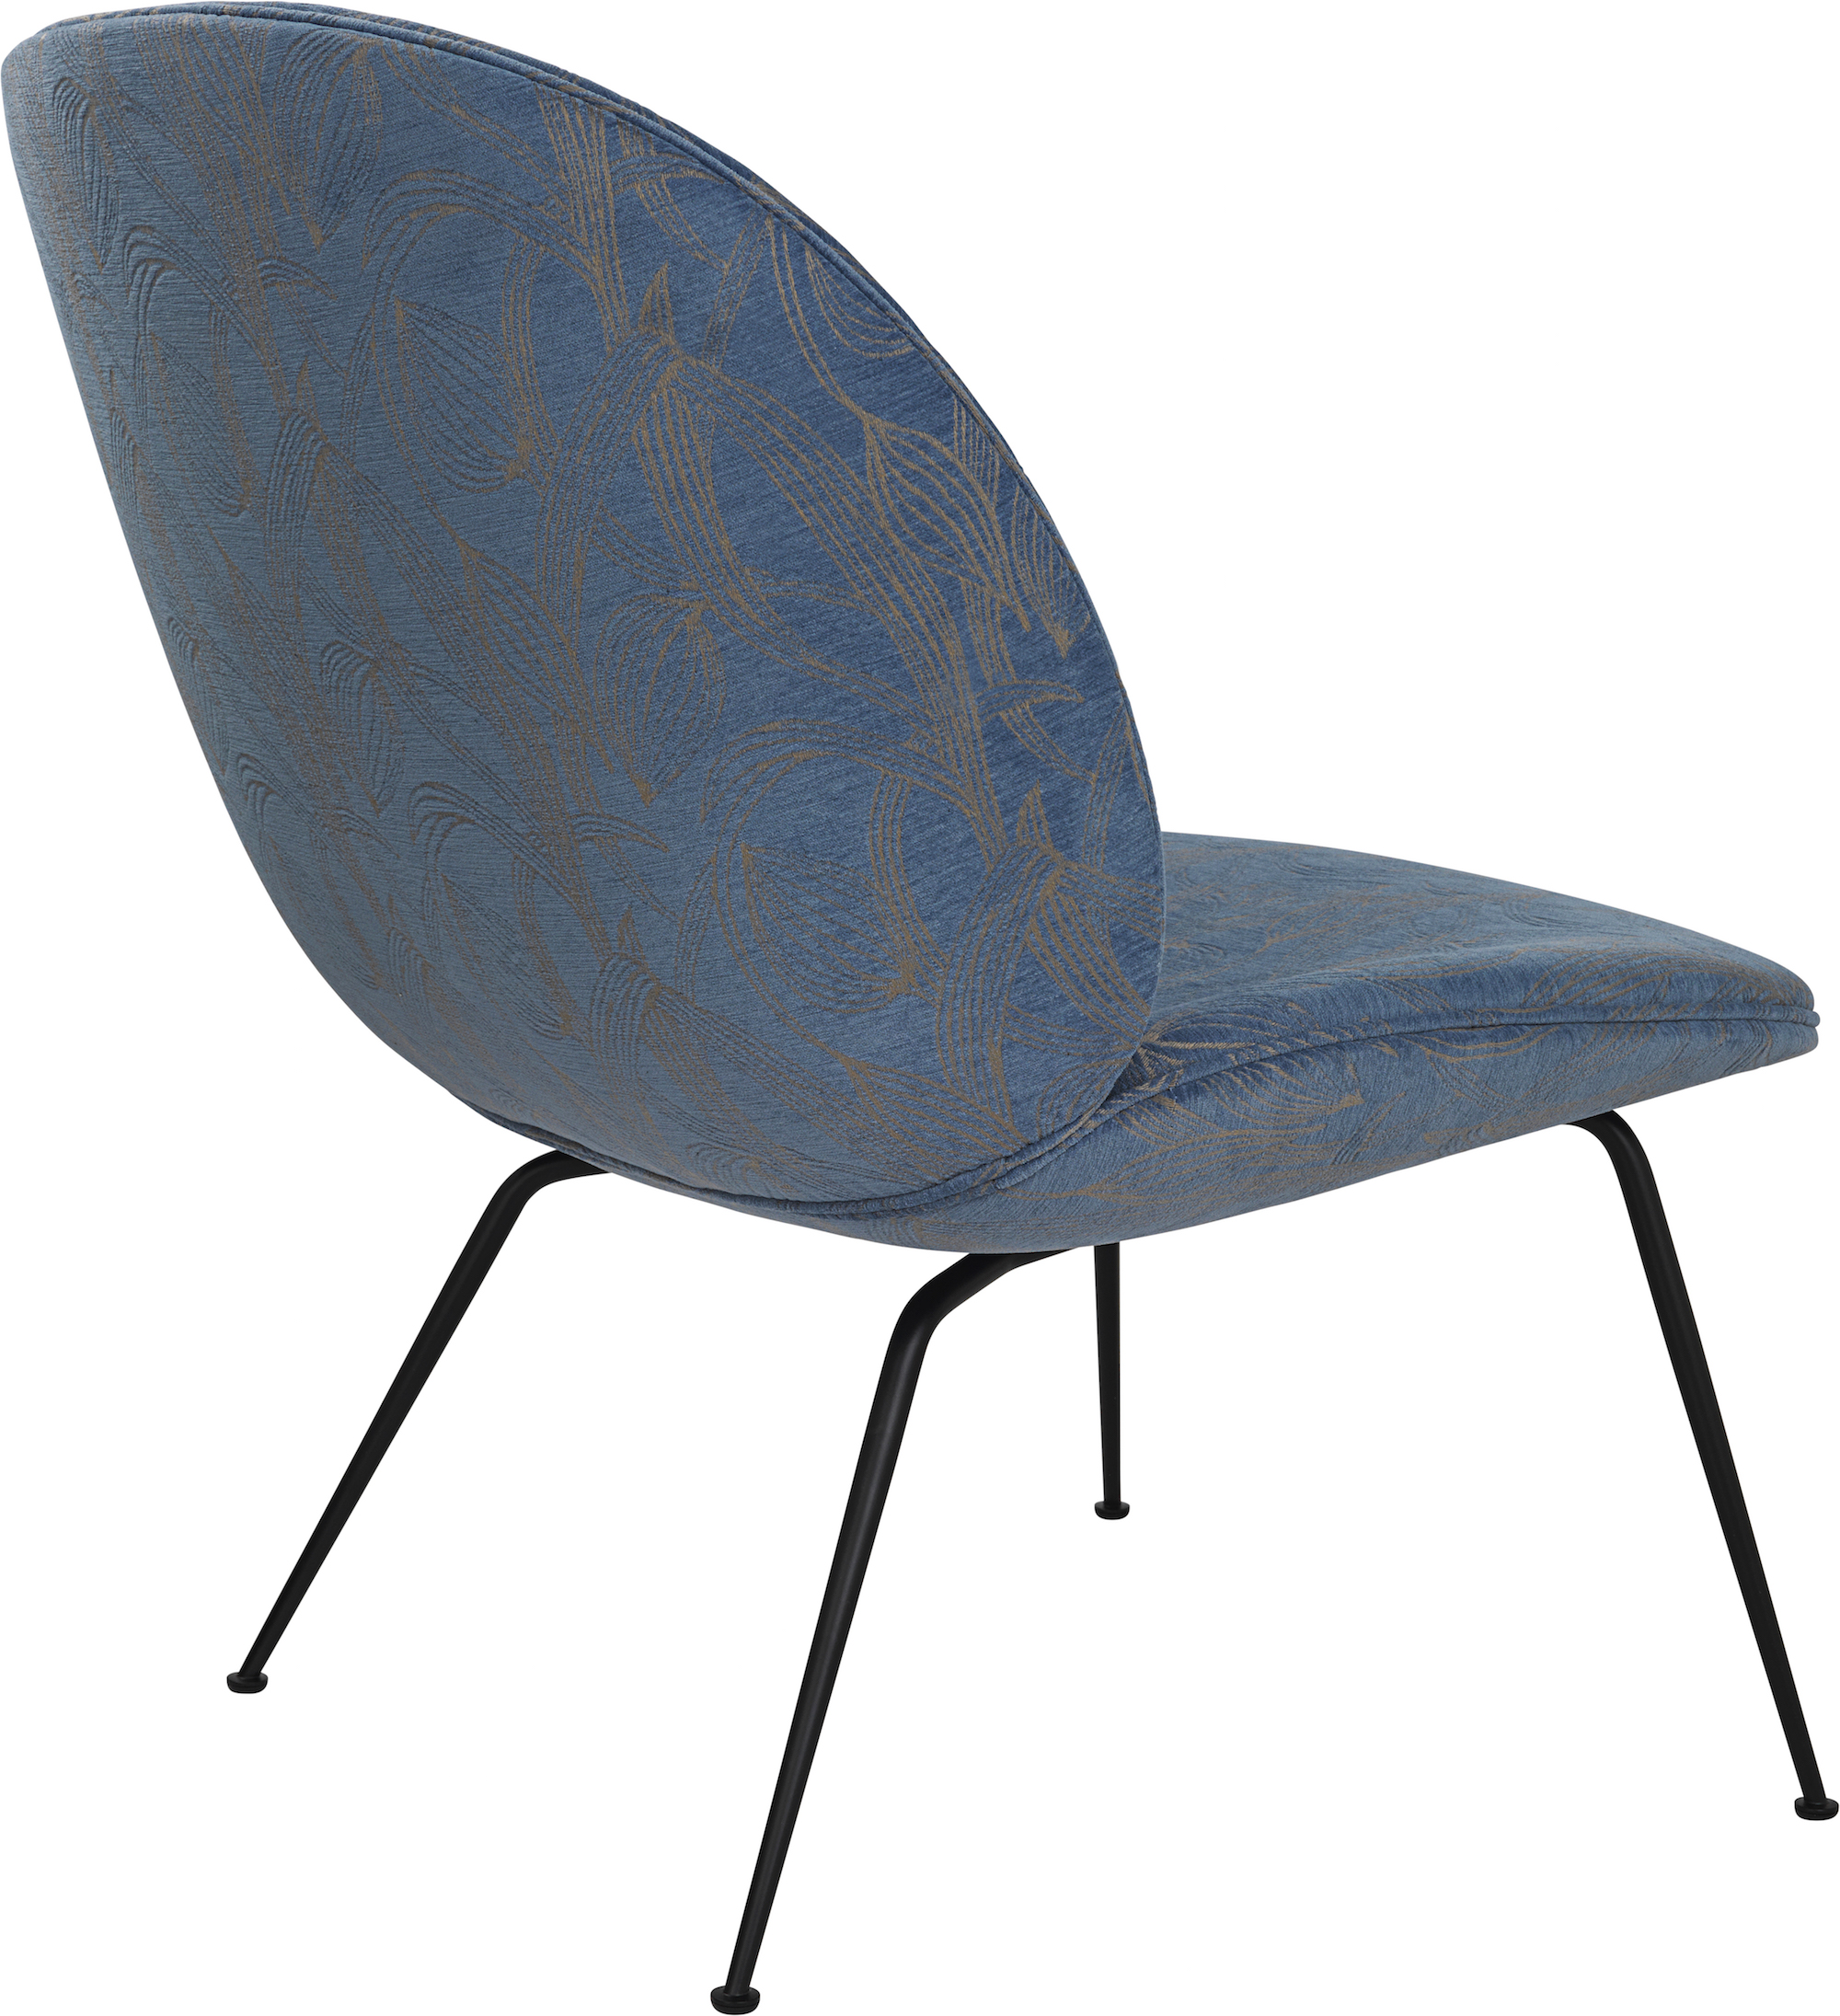 Gubi Beetle Lounge Chair Gamfratesi